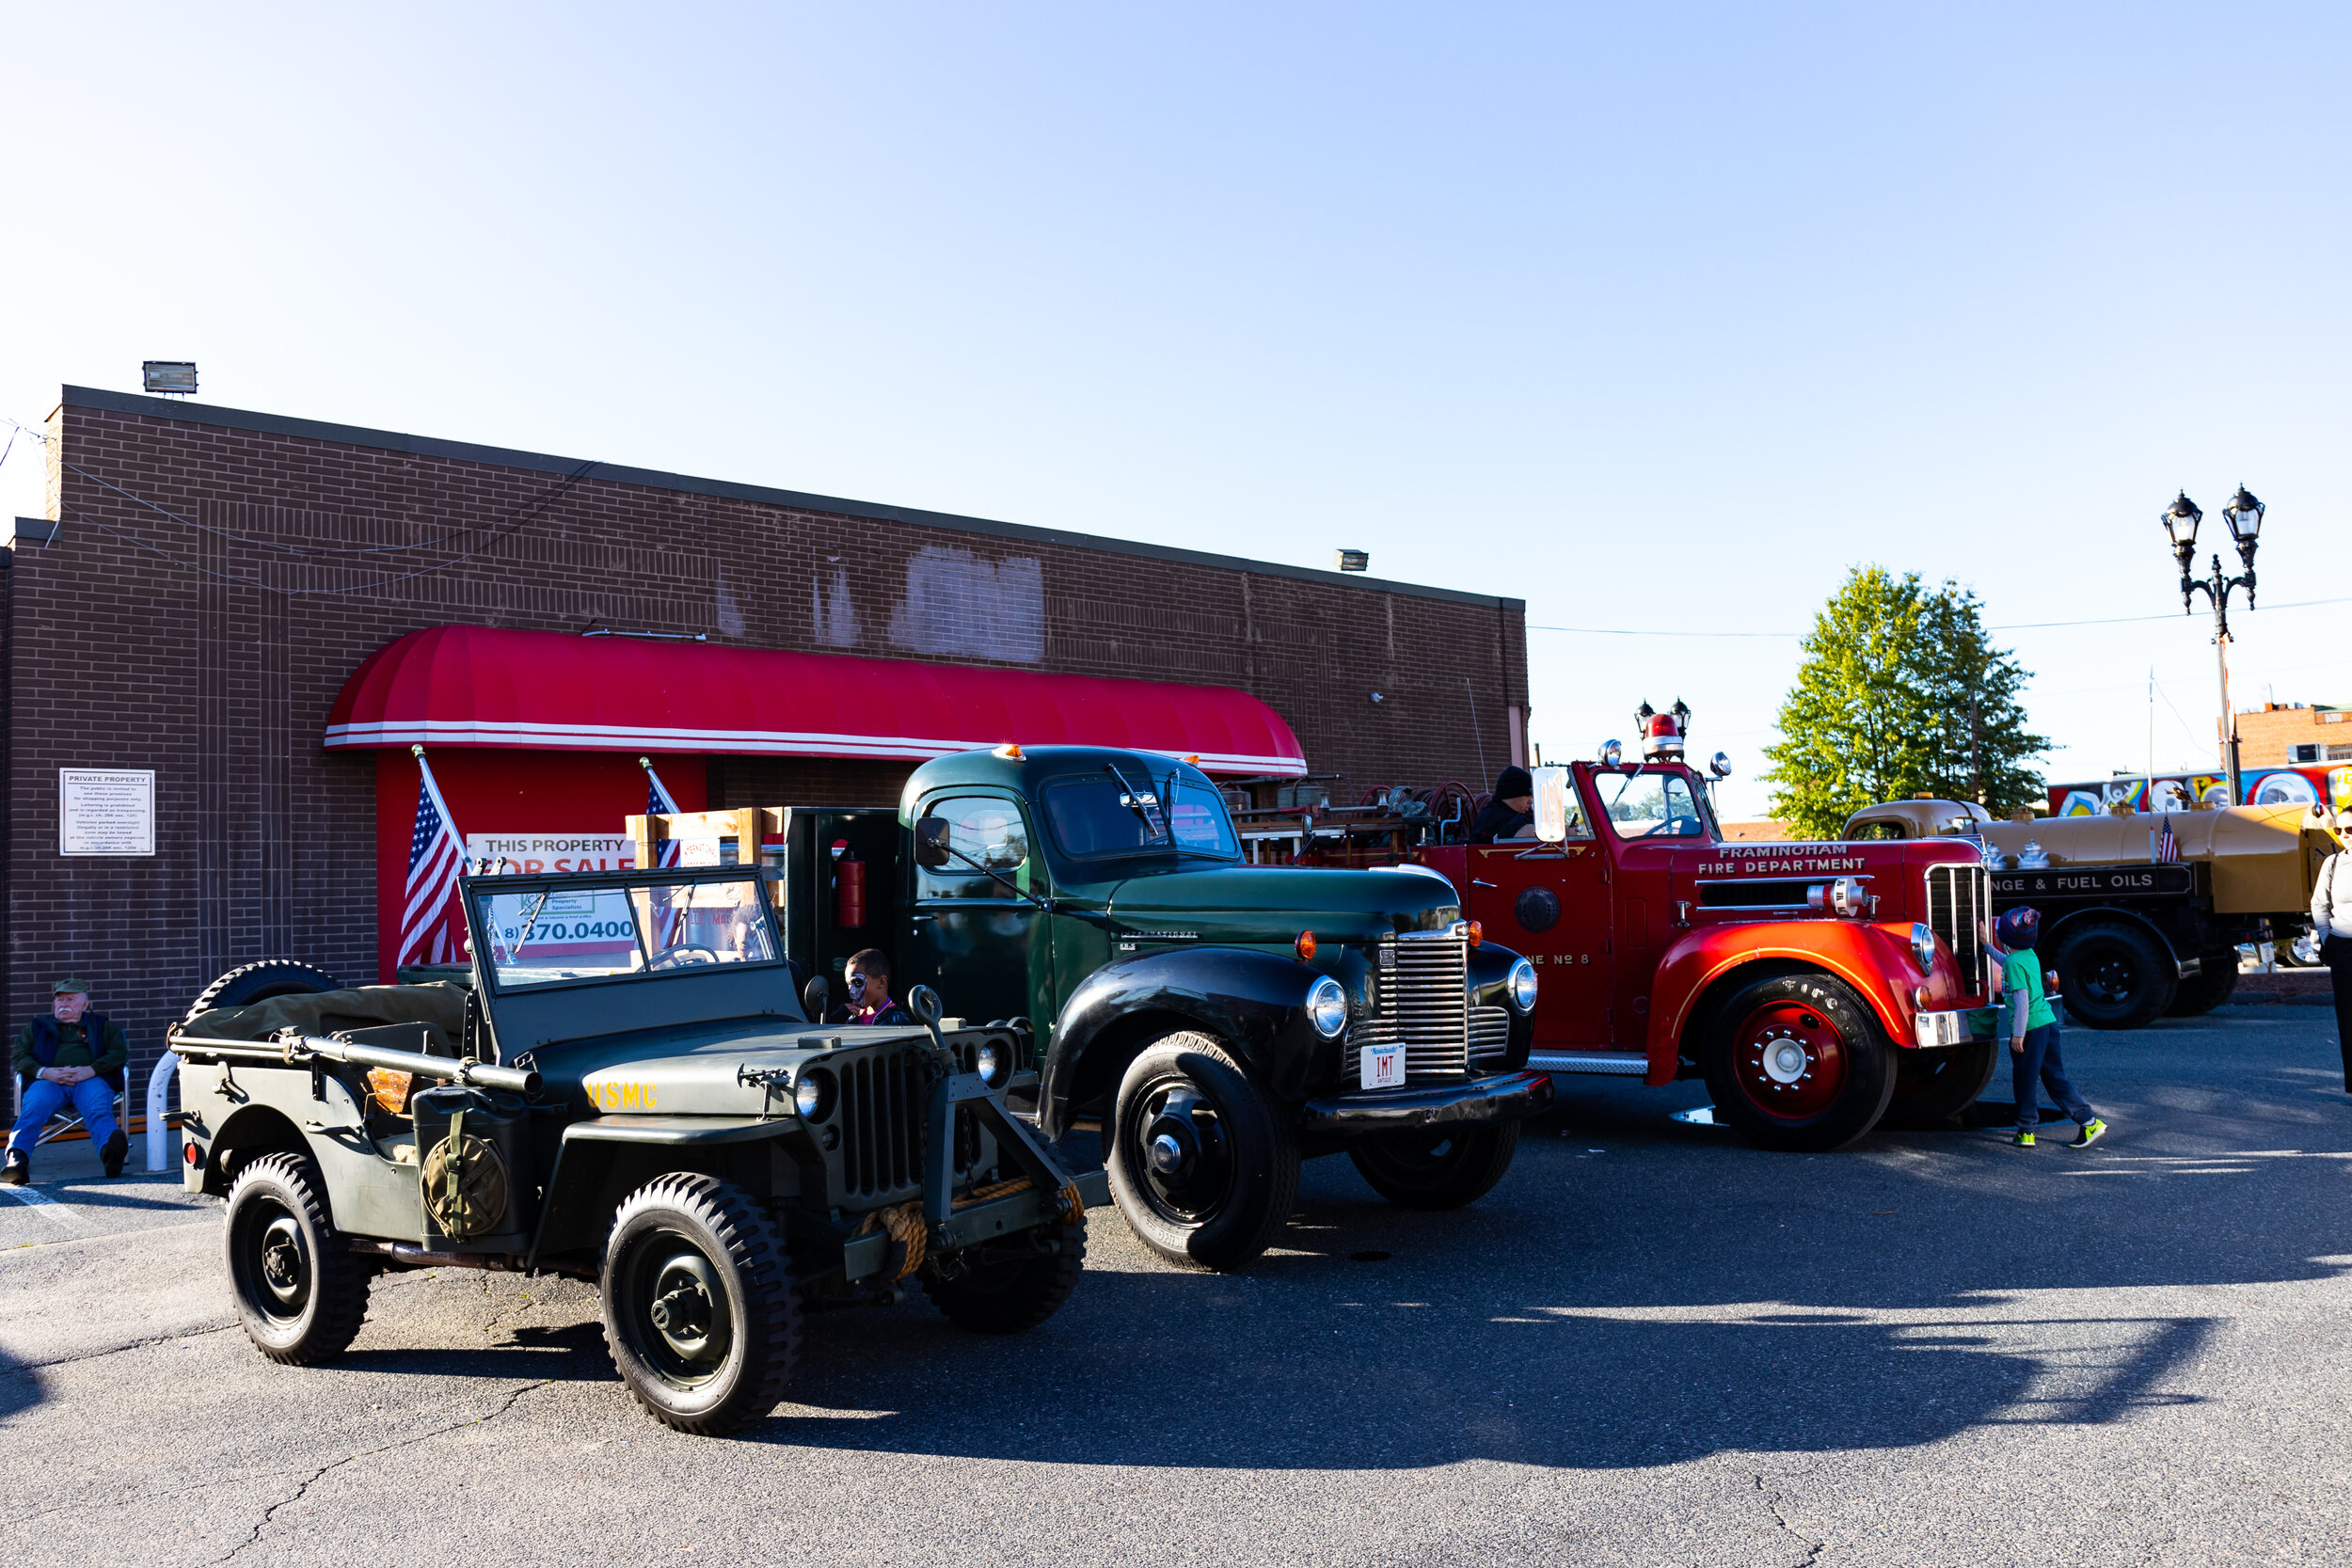 Charlie Rousseau's Antique Cars Show at 430 Waverly Street in Burkis Square. Photo credit Itala Keller.